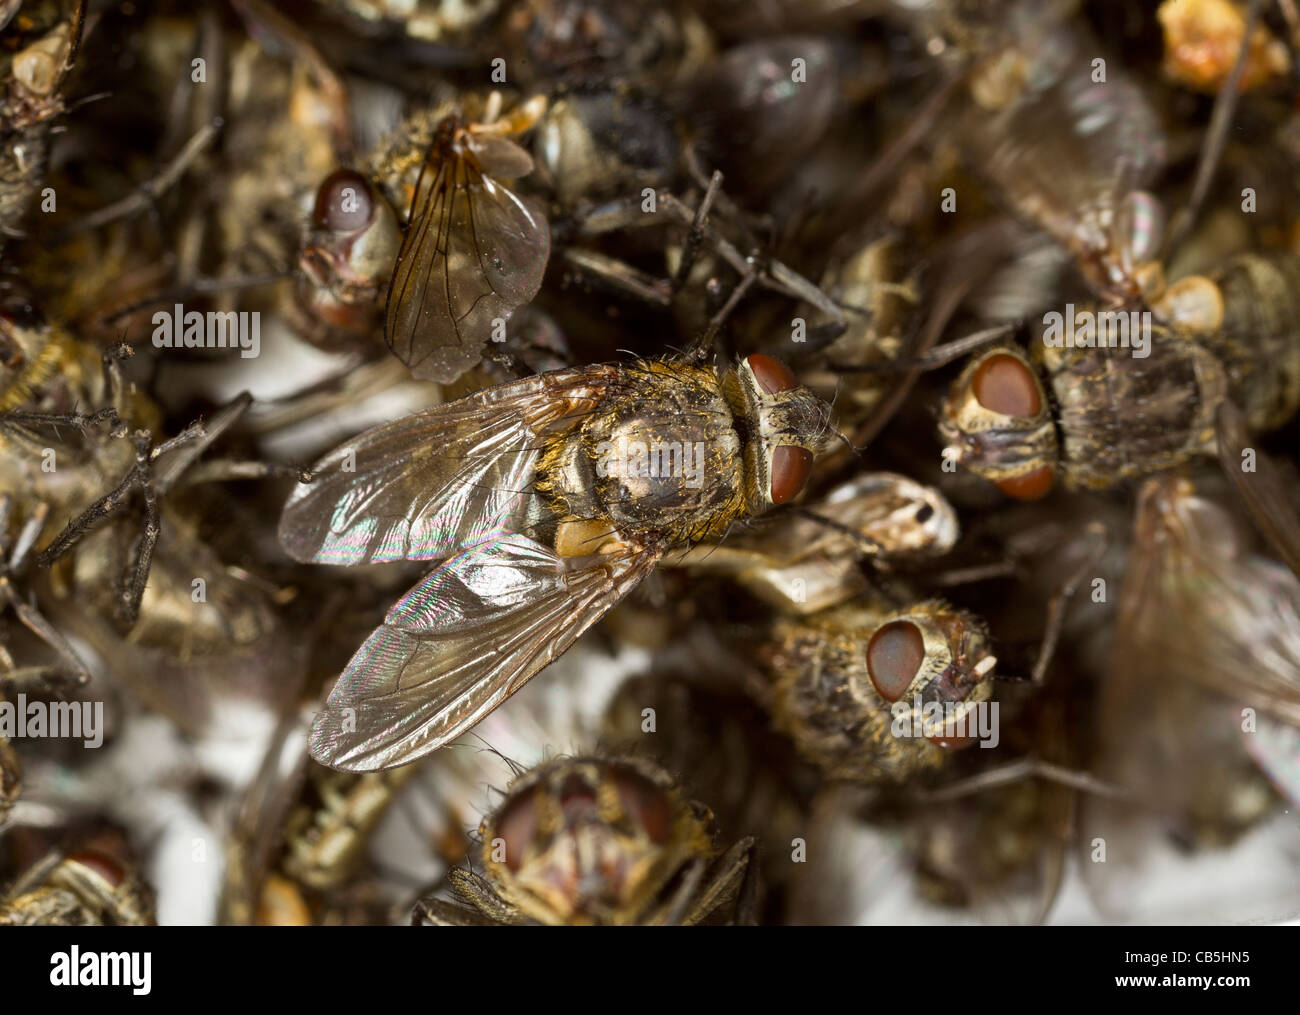 Killer Fly Stock Photos Images Alamy Flytrap Robots Can Hunt And Catch Bugs For Meals Dead Cluster Flies Pollenia Rudis Lying In An Electric Trap